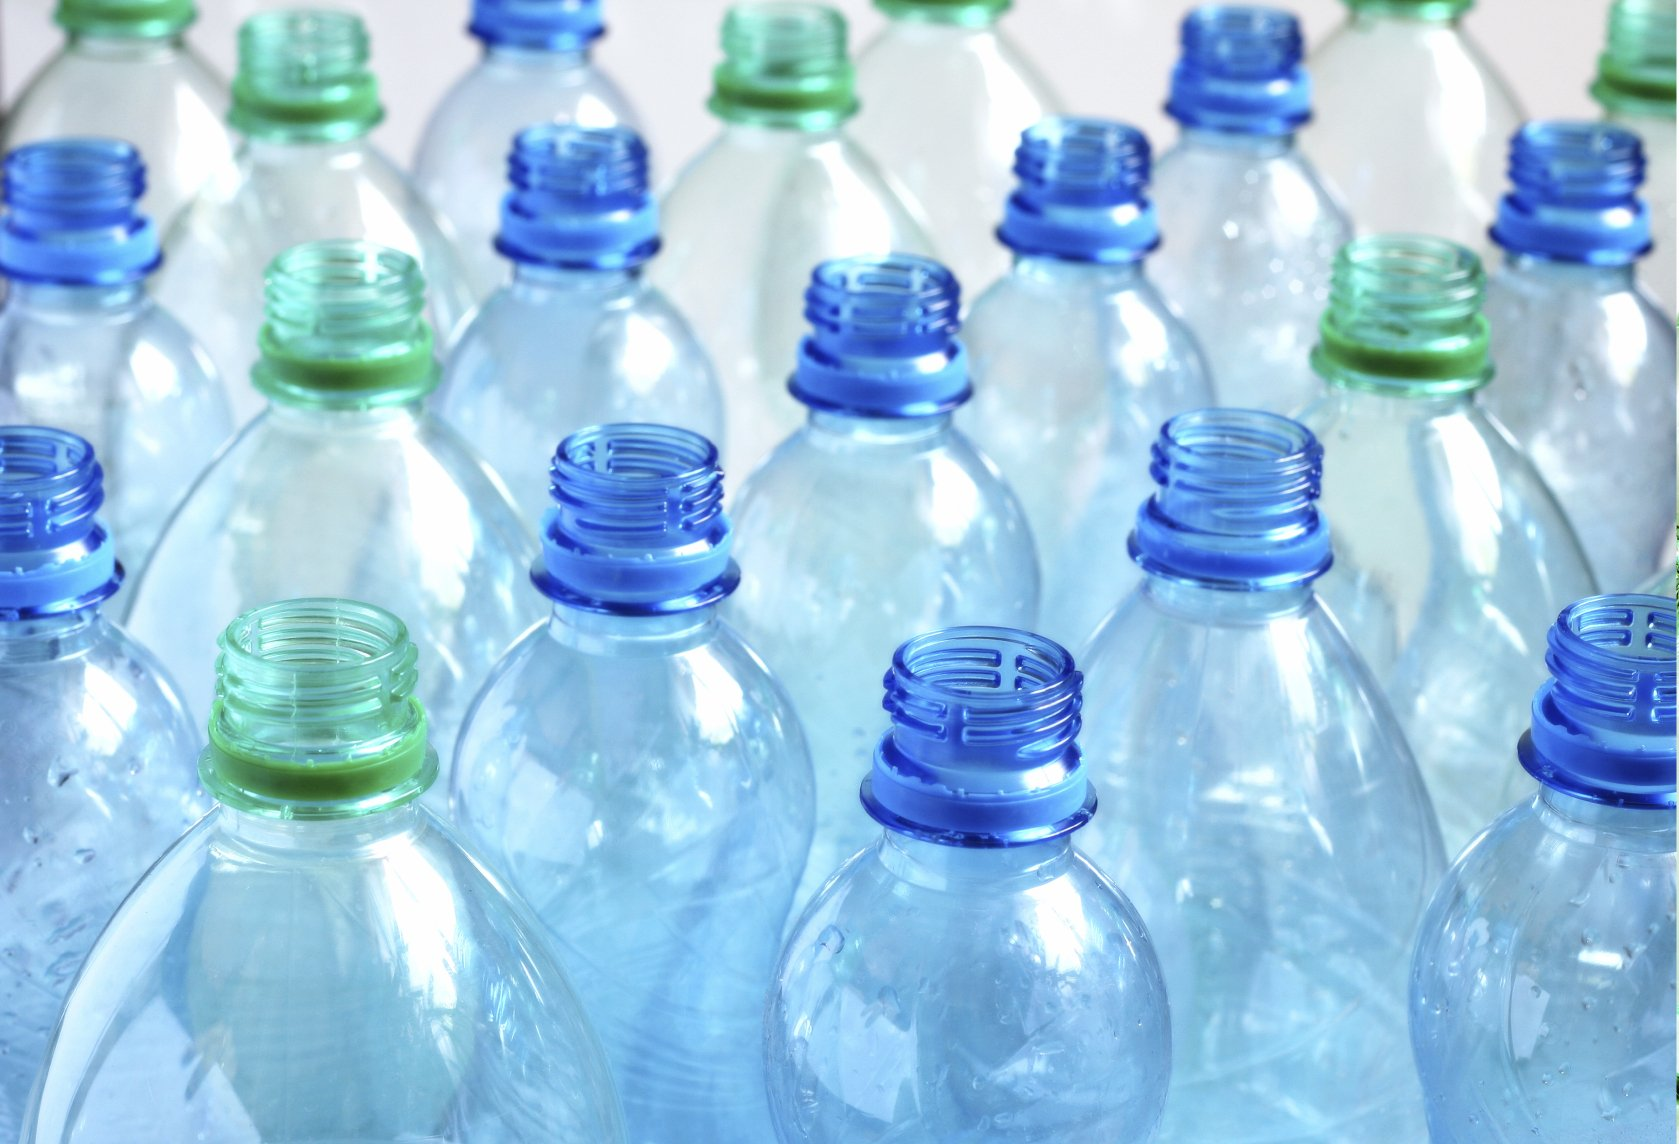 Plastic-Eating Microorganisms Could Herald New Environmental Future ...